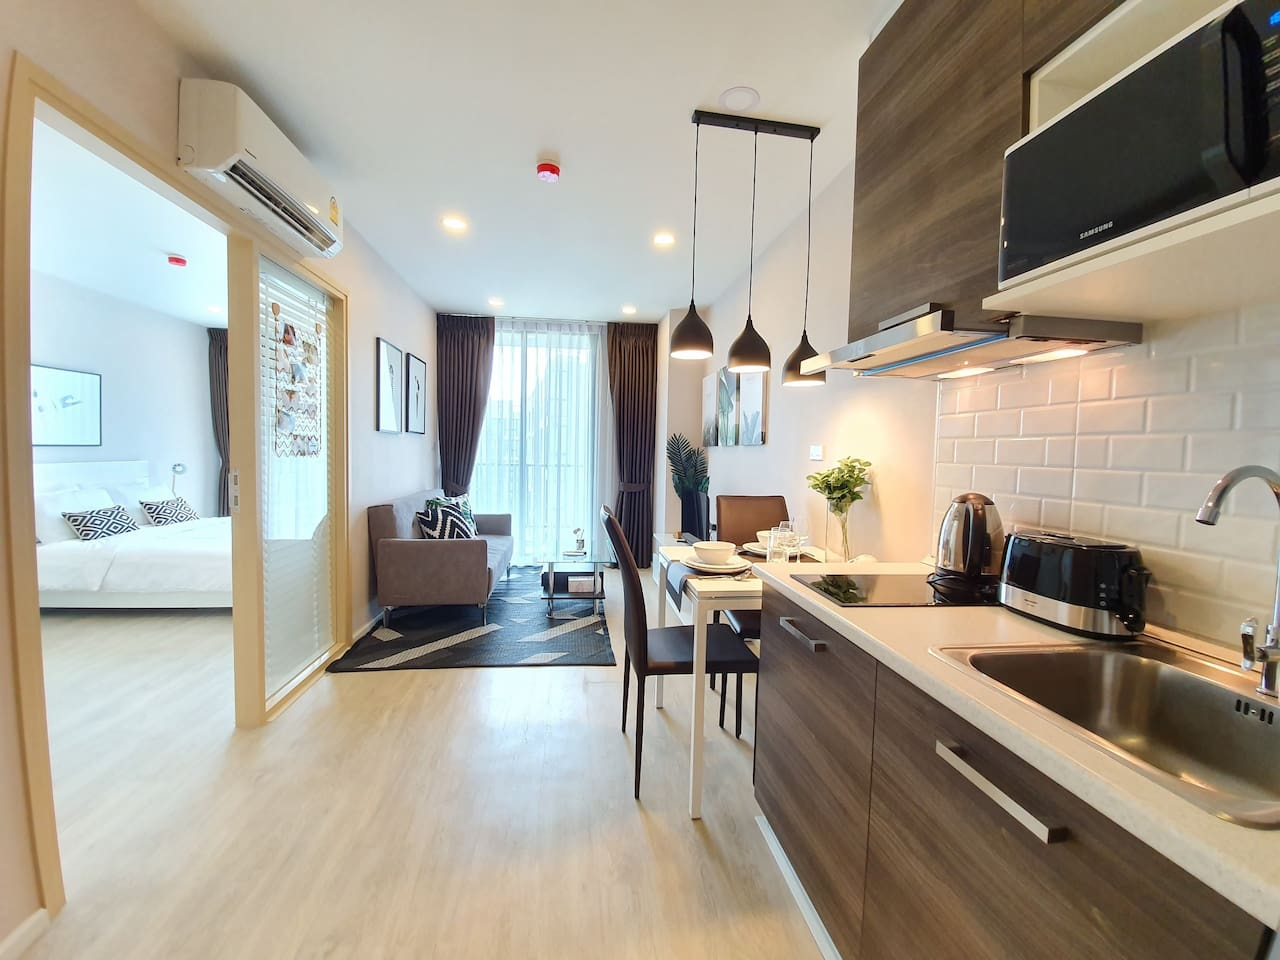 ❤️ Brand new apartment in the central of Nimman